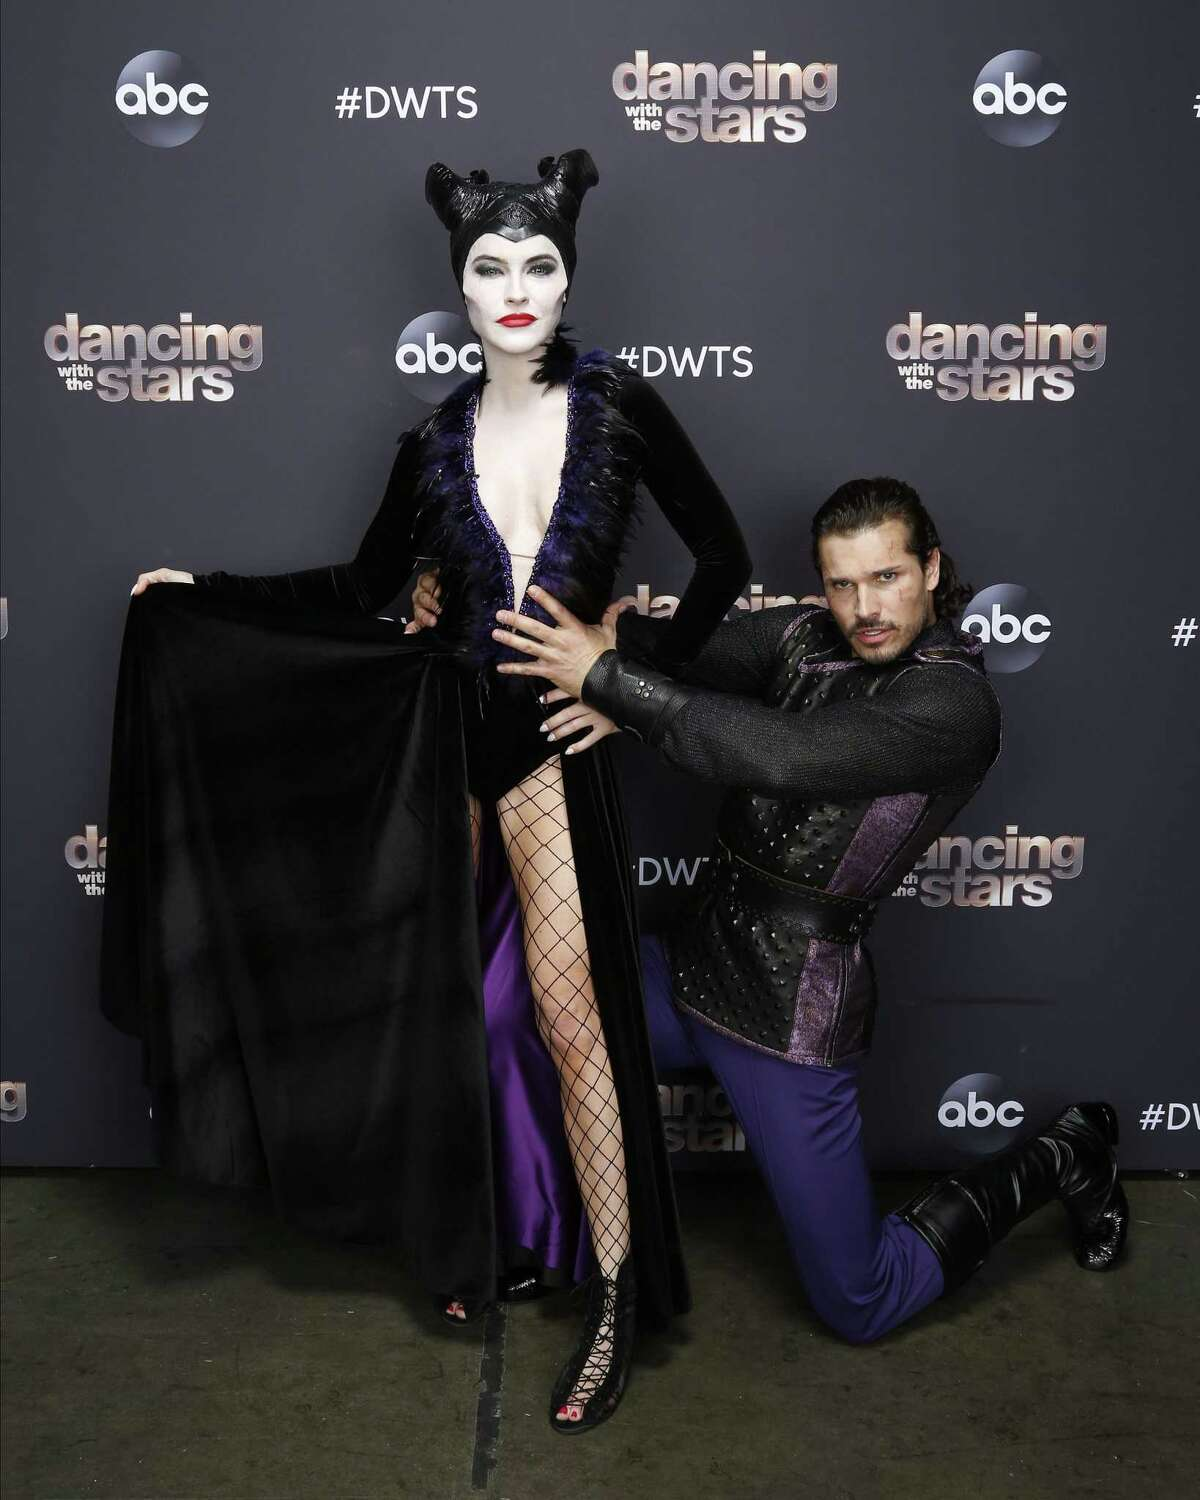 Chrishell Stause : Somebody give Chrishell Stause a perfect 30 for her Maleficent-themed Dancing With the Stars performance!